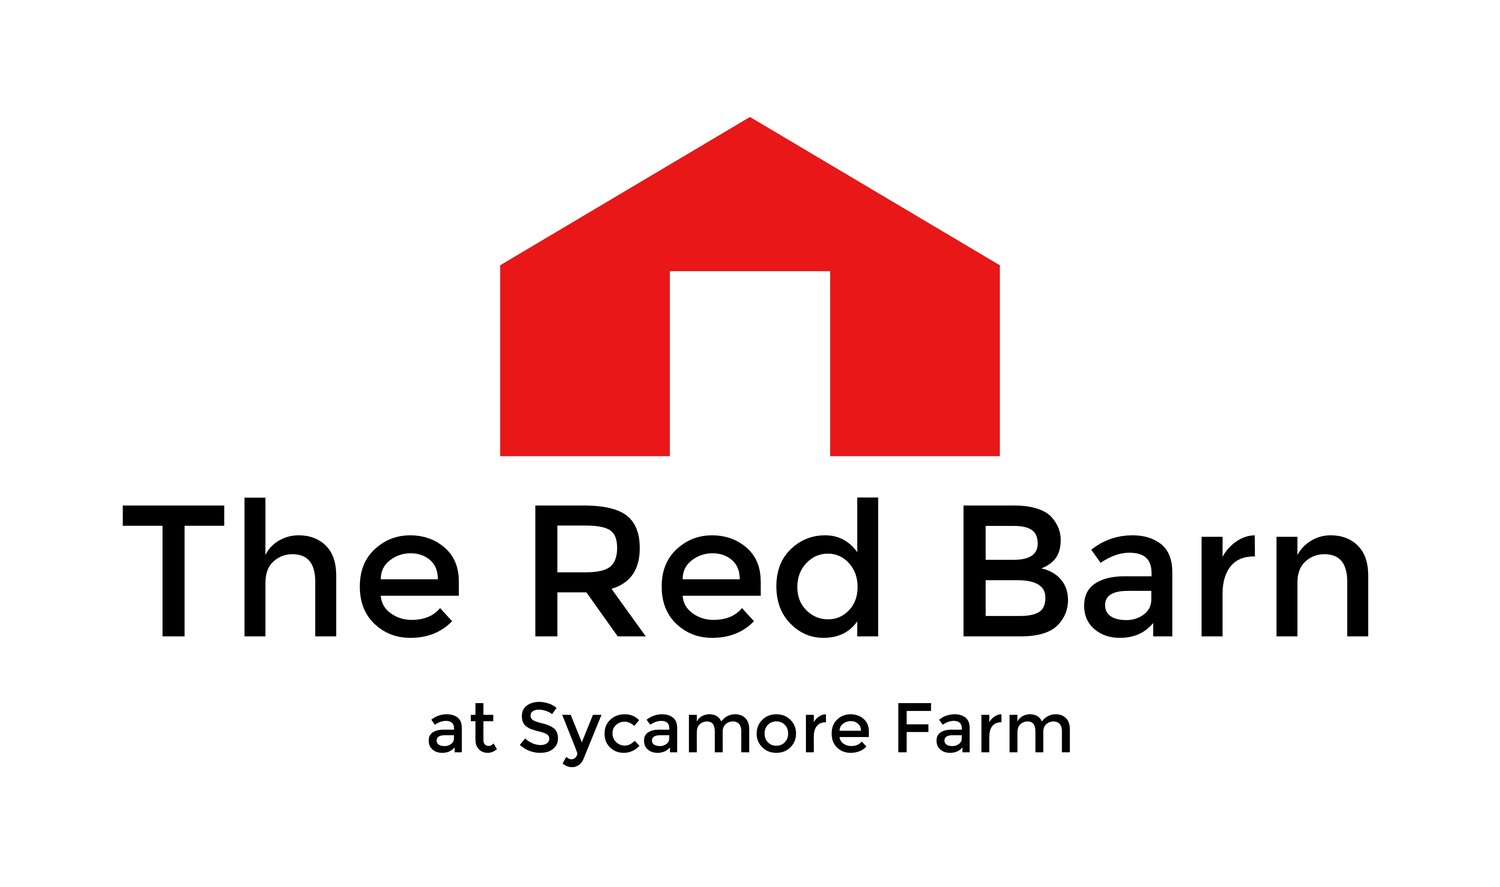 The Sycamore Farm